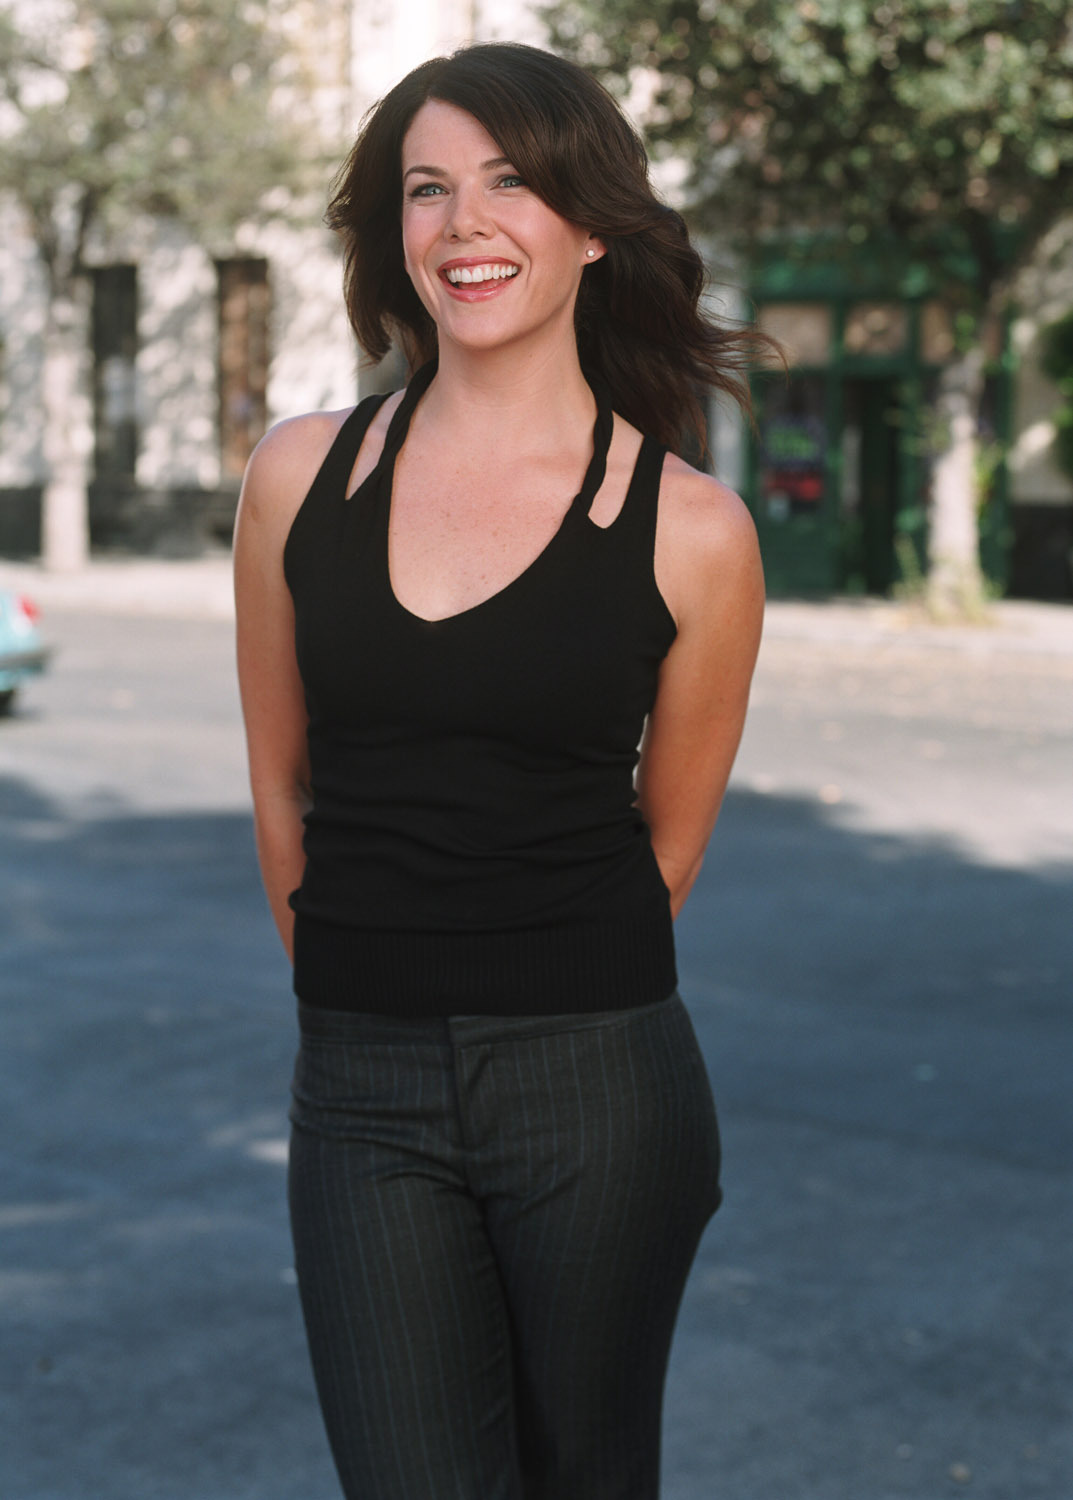 Lauren graham hot